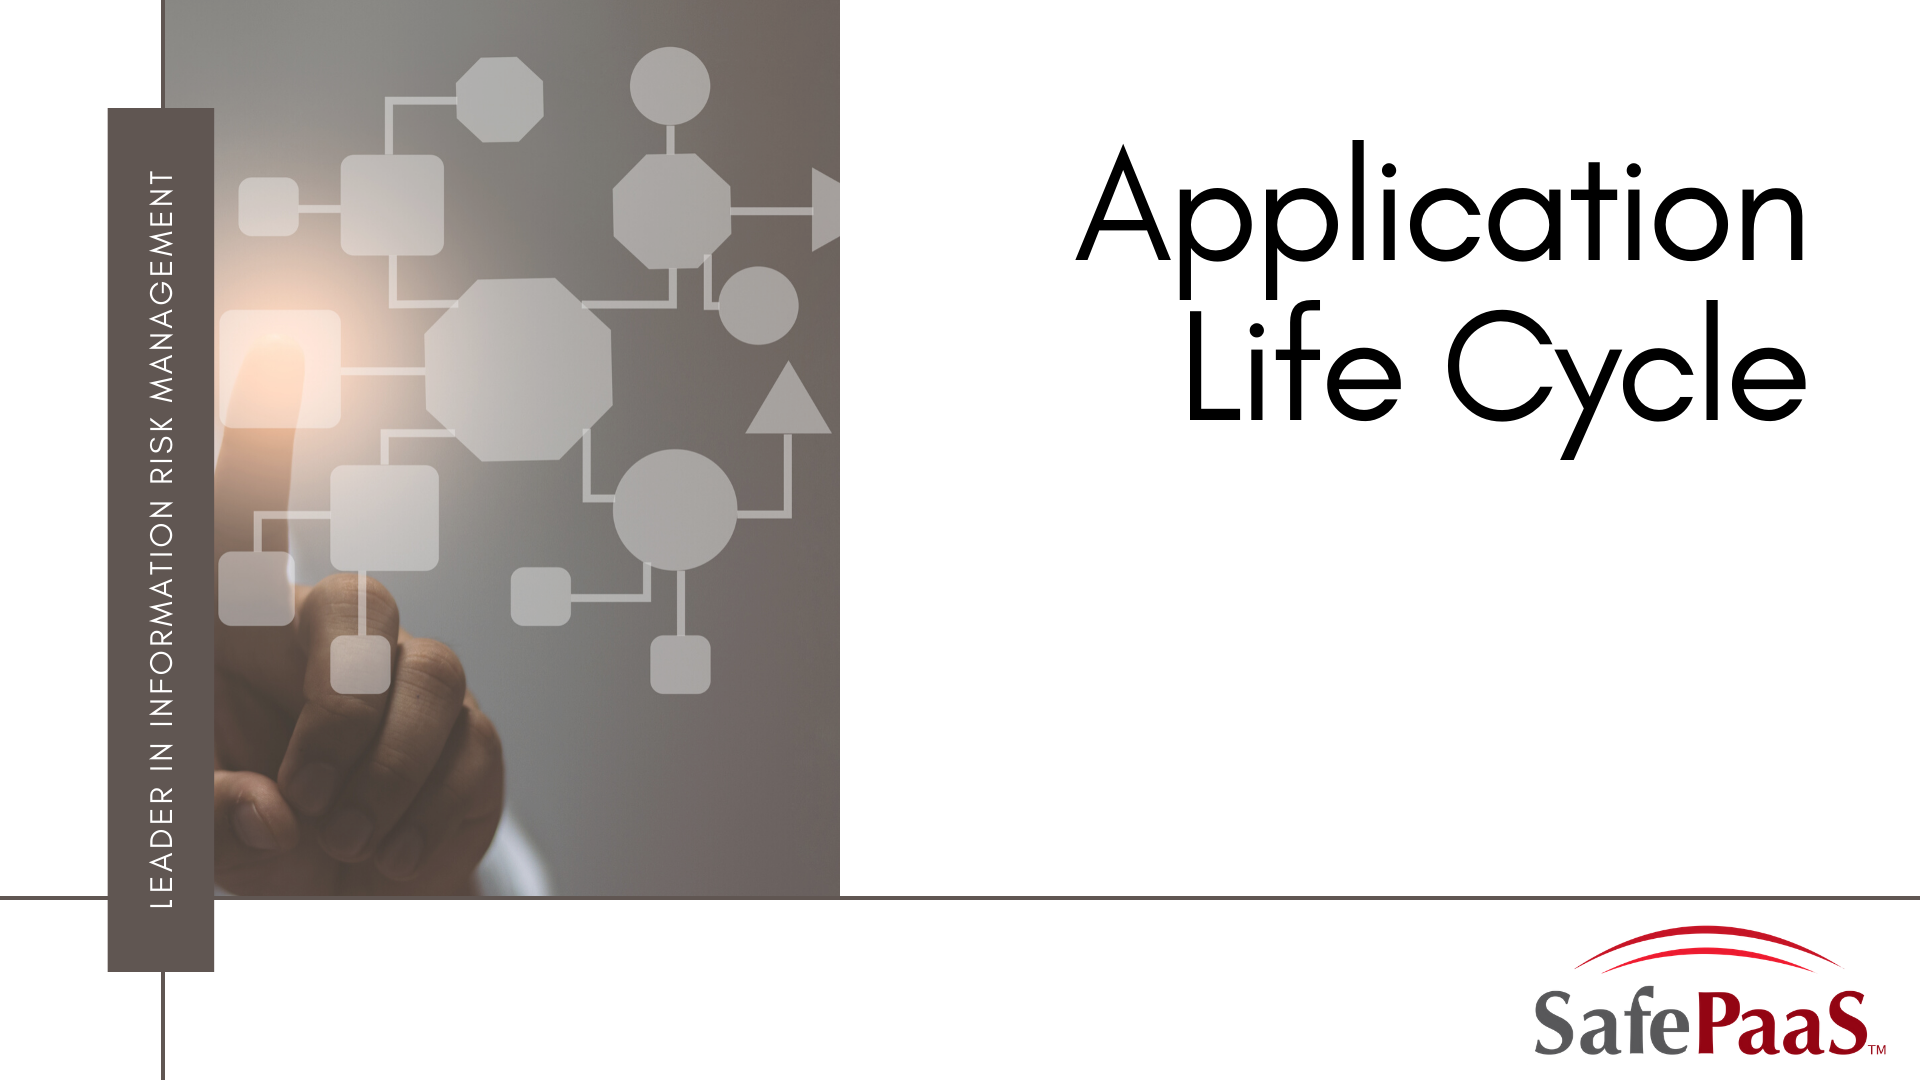 Application Life Cycle Infographic